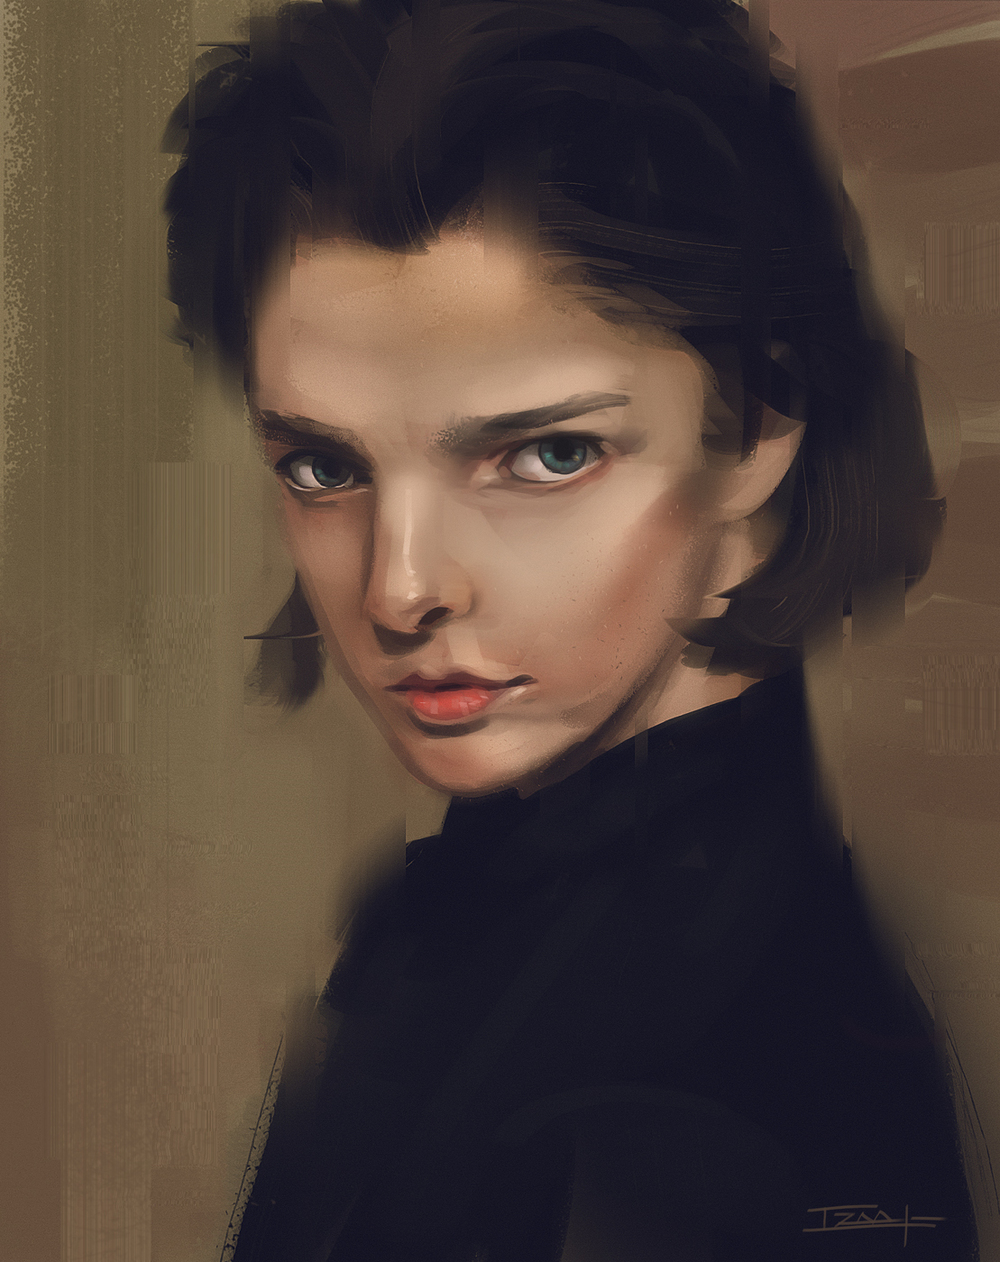 Portrait Practice from Reference Image